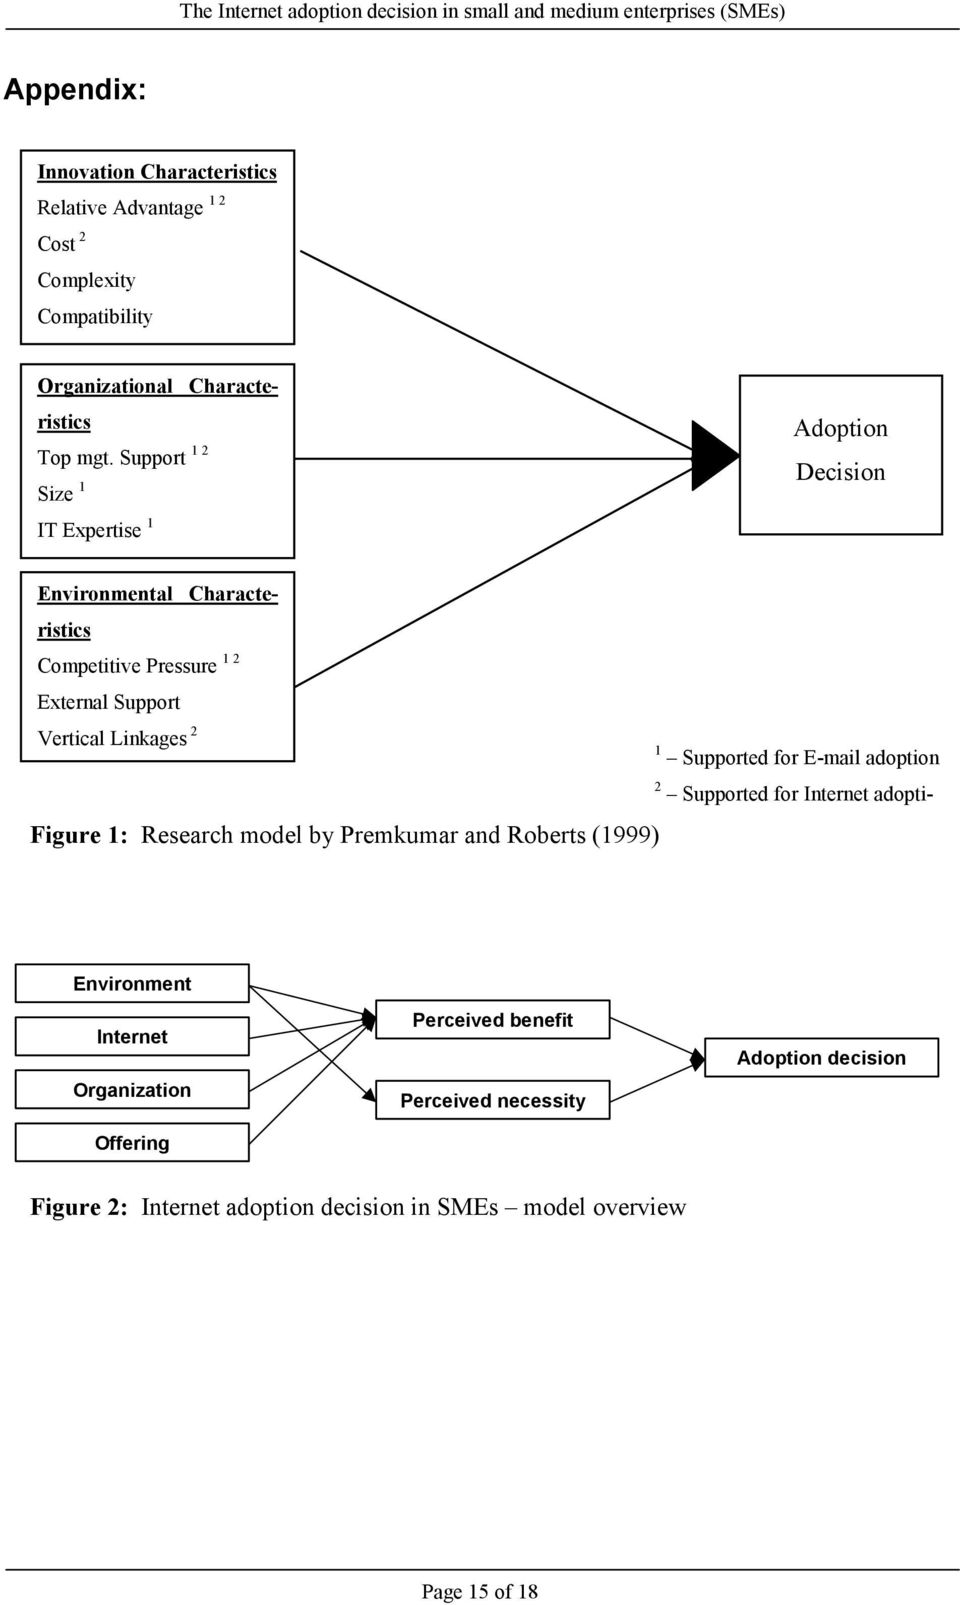 2 1 Supported for E-mail adoption Figure 1: Research model by Premkumar and Roberts (1999) 2 Supported for Internet adopti- Environment